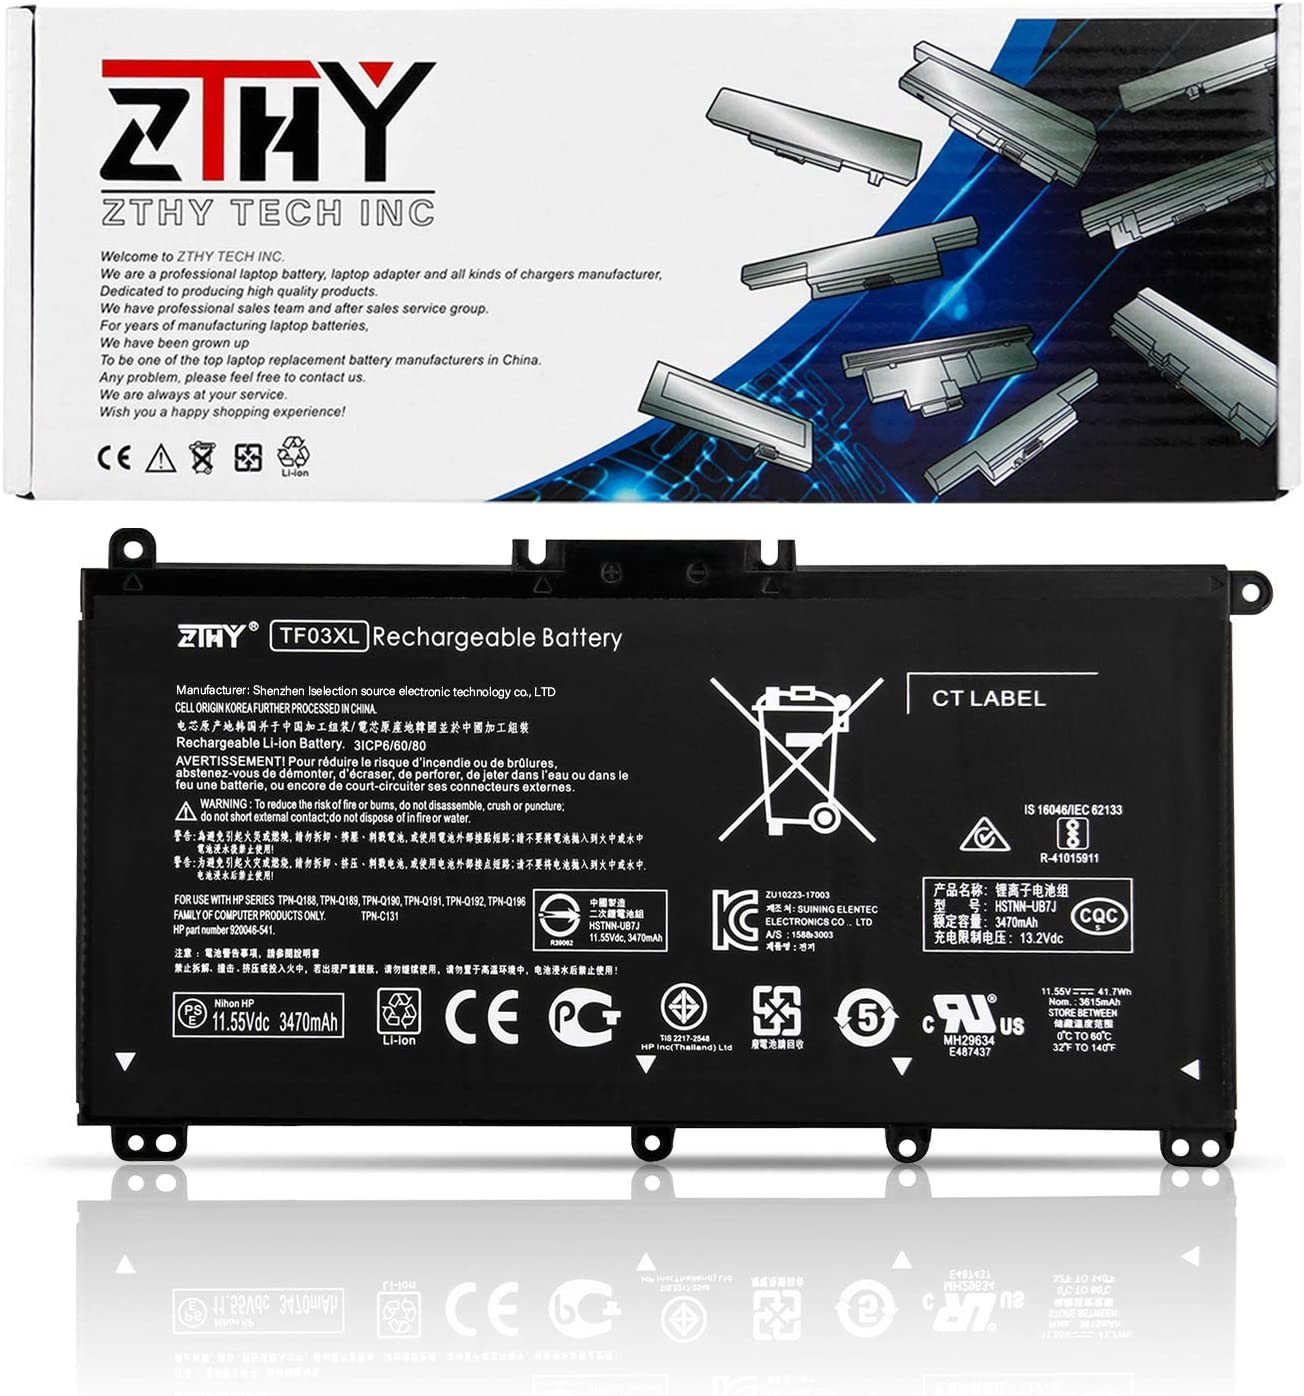 ZTHY TF03XL Laptop Battery for HP Pavilion 15-CC 15-CC023CL CC050WM CC563ST CC0XX CC000 15-CD 15-CD0XX CD000 17-AR050WM 15-CK 15-CK0XX 17-AR 17-AR050WM 17-AR007CA 14-BF 14-BF040WM 14-BK000 Notebook